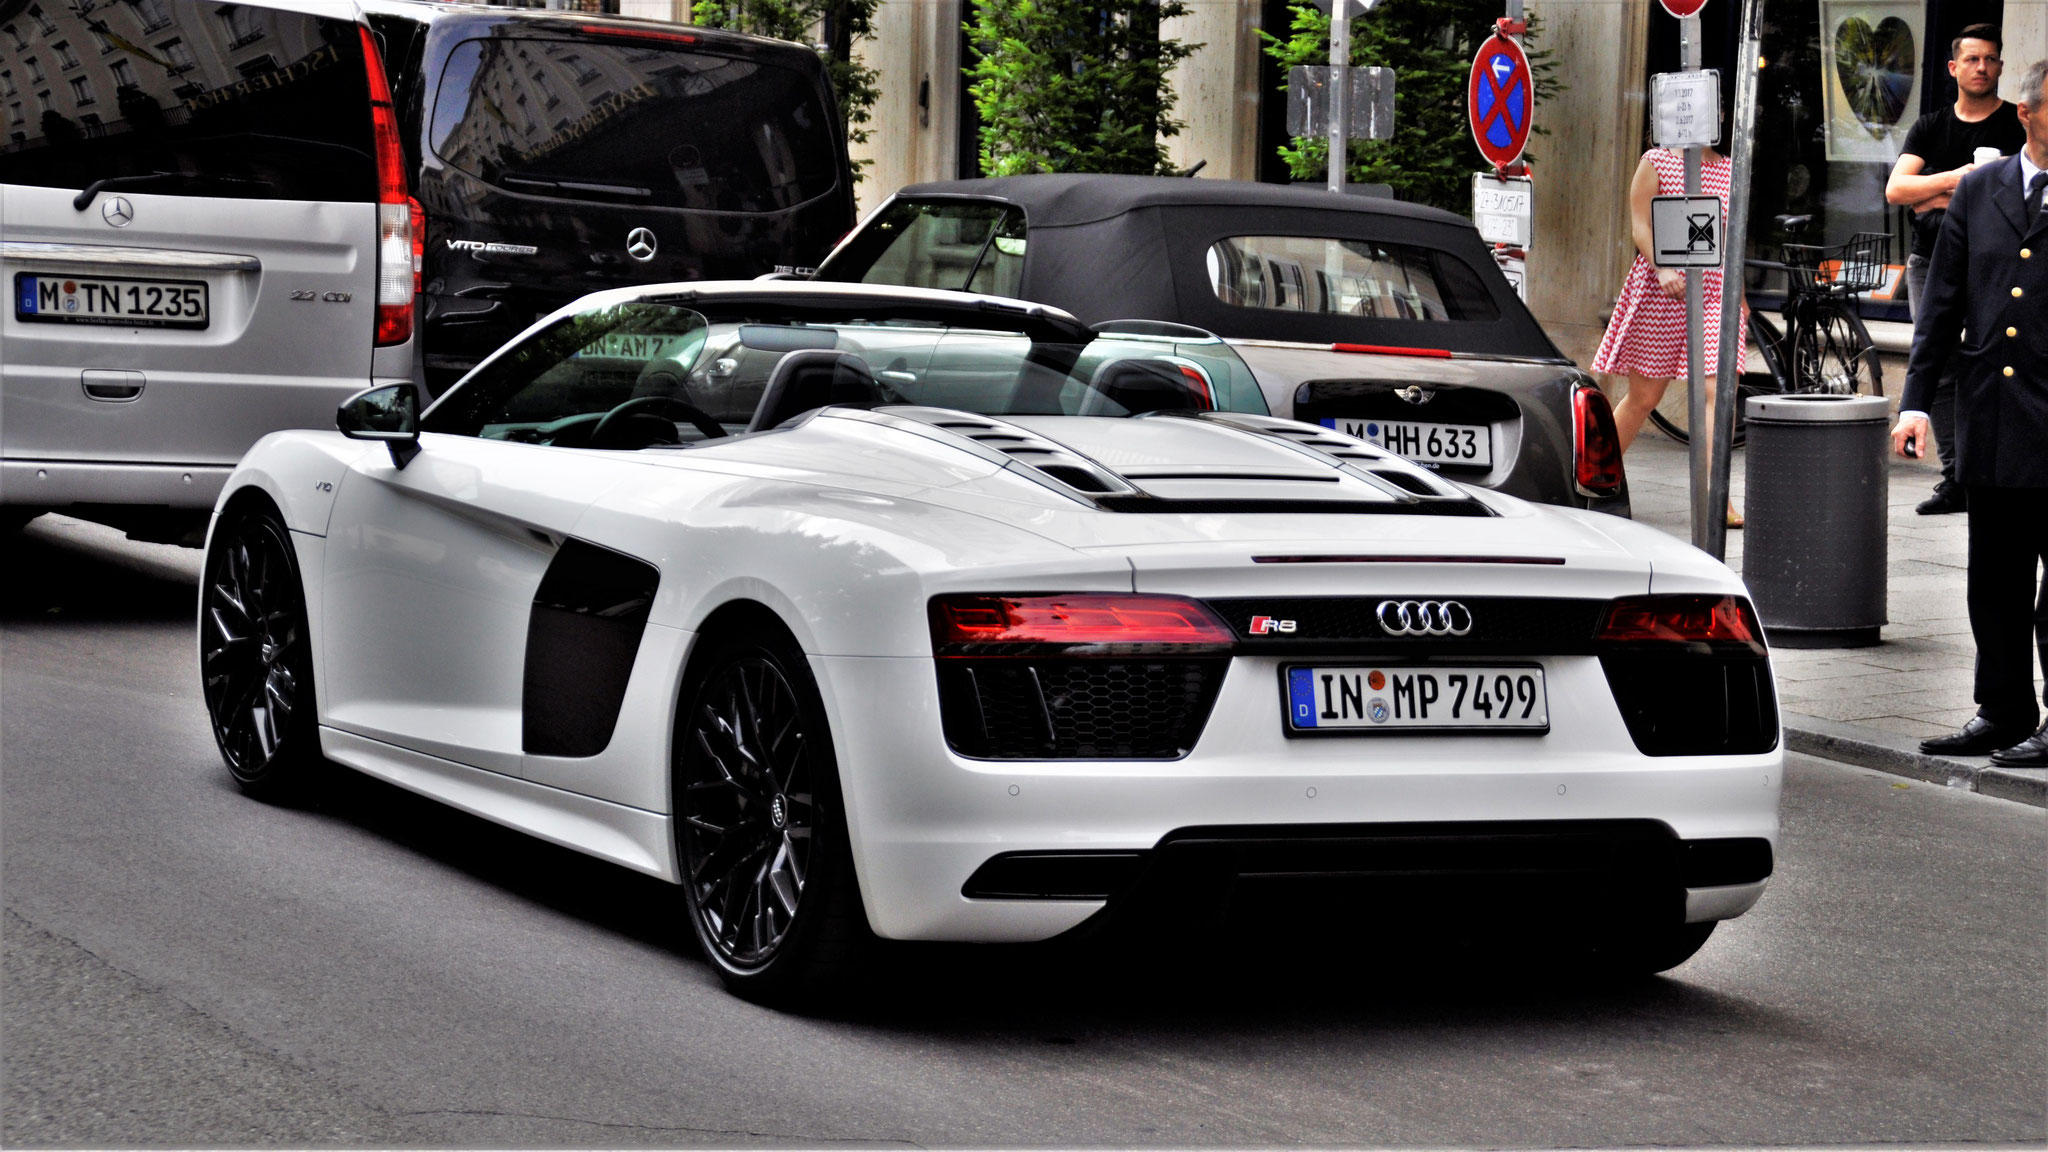 Audi R8 V10 Spyder - IN-MP-7499